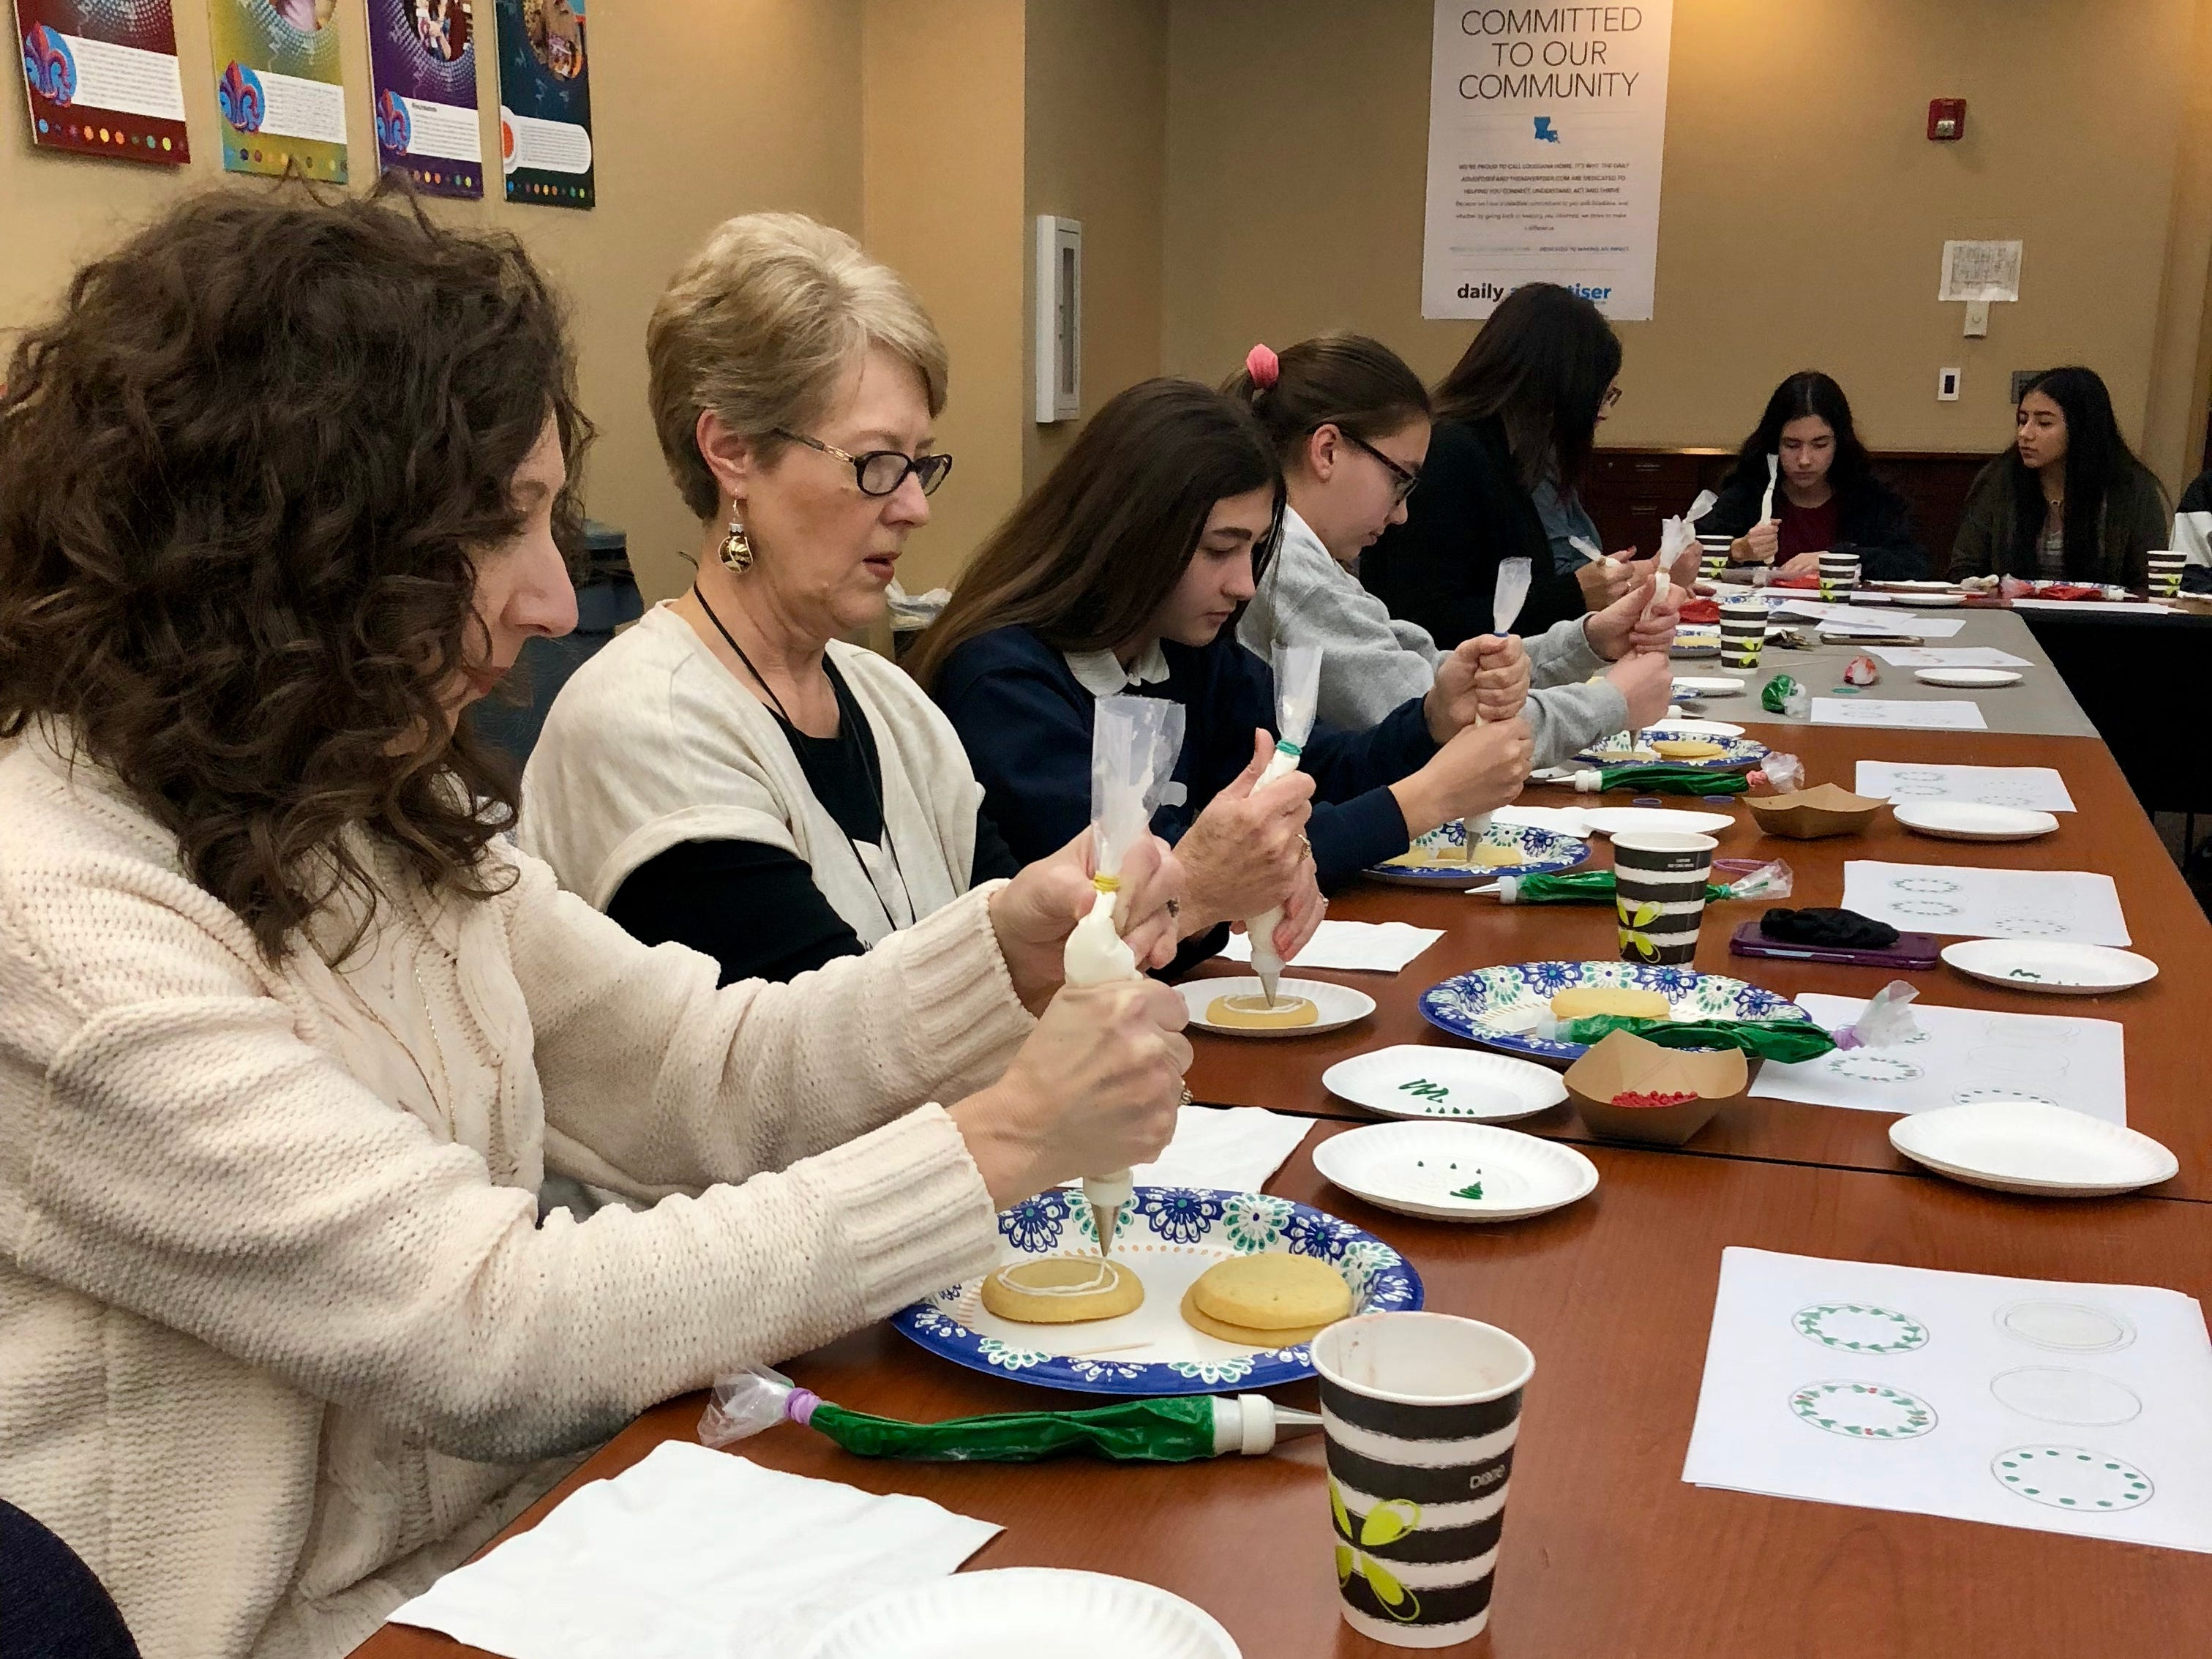 The Daily Advertiser and food writer Megan Wyatt hosted four cookie-decorating workshops in November and December to get folks into the holiday spirit.